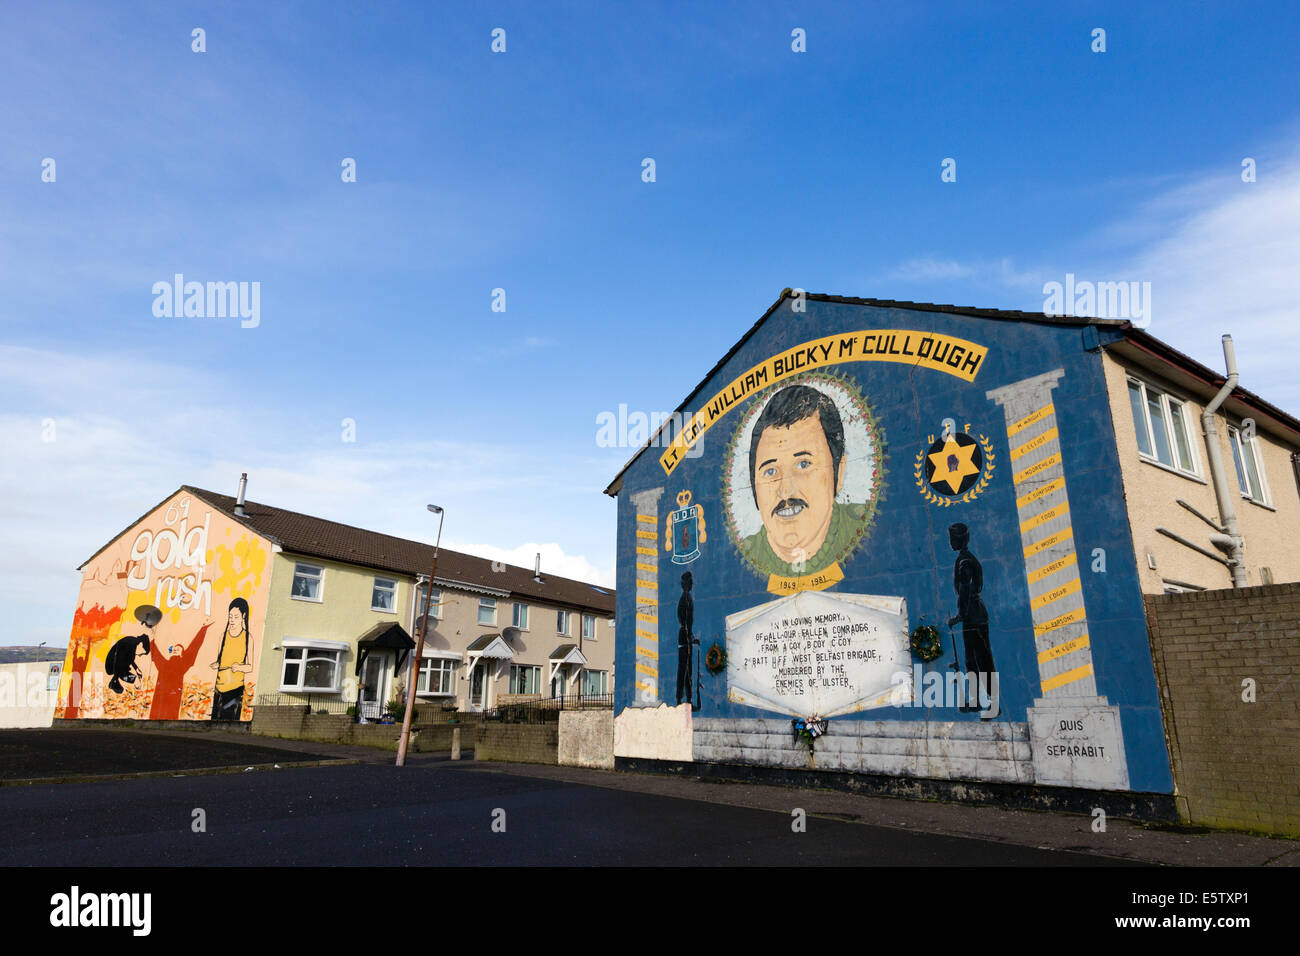 Loyalist mural in the Lower Shankill commemorating William 'Bucky' McCullough. - Stock Image